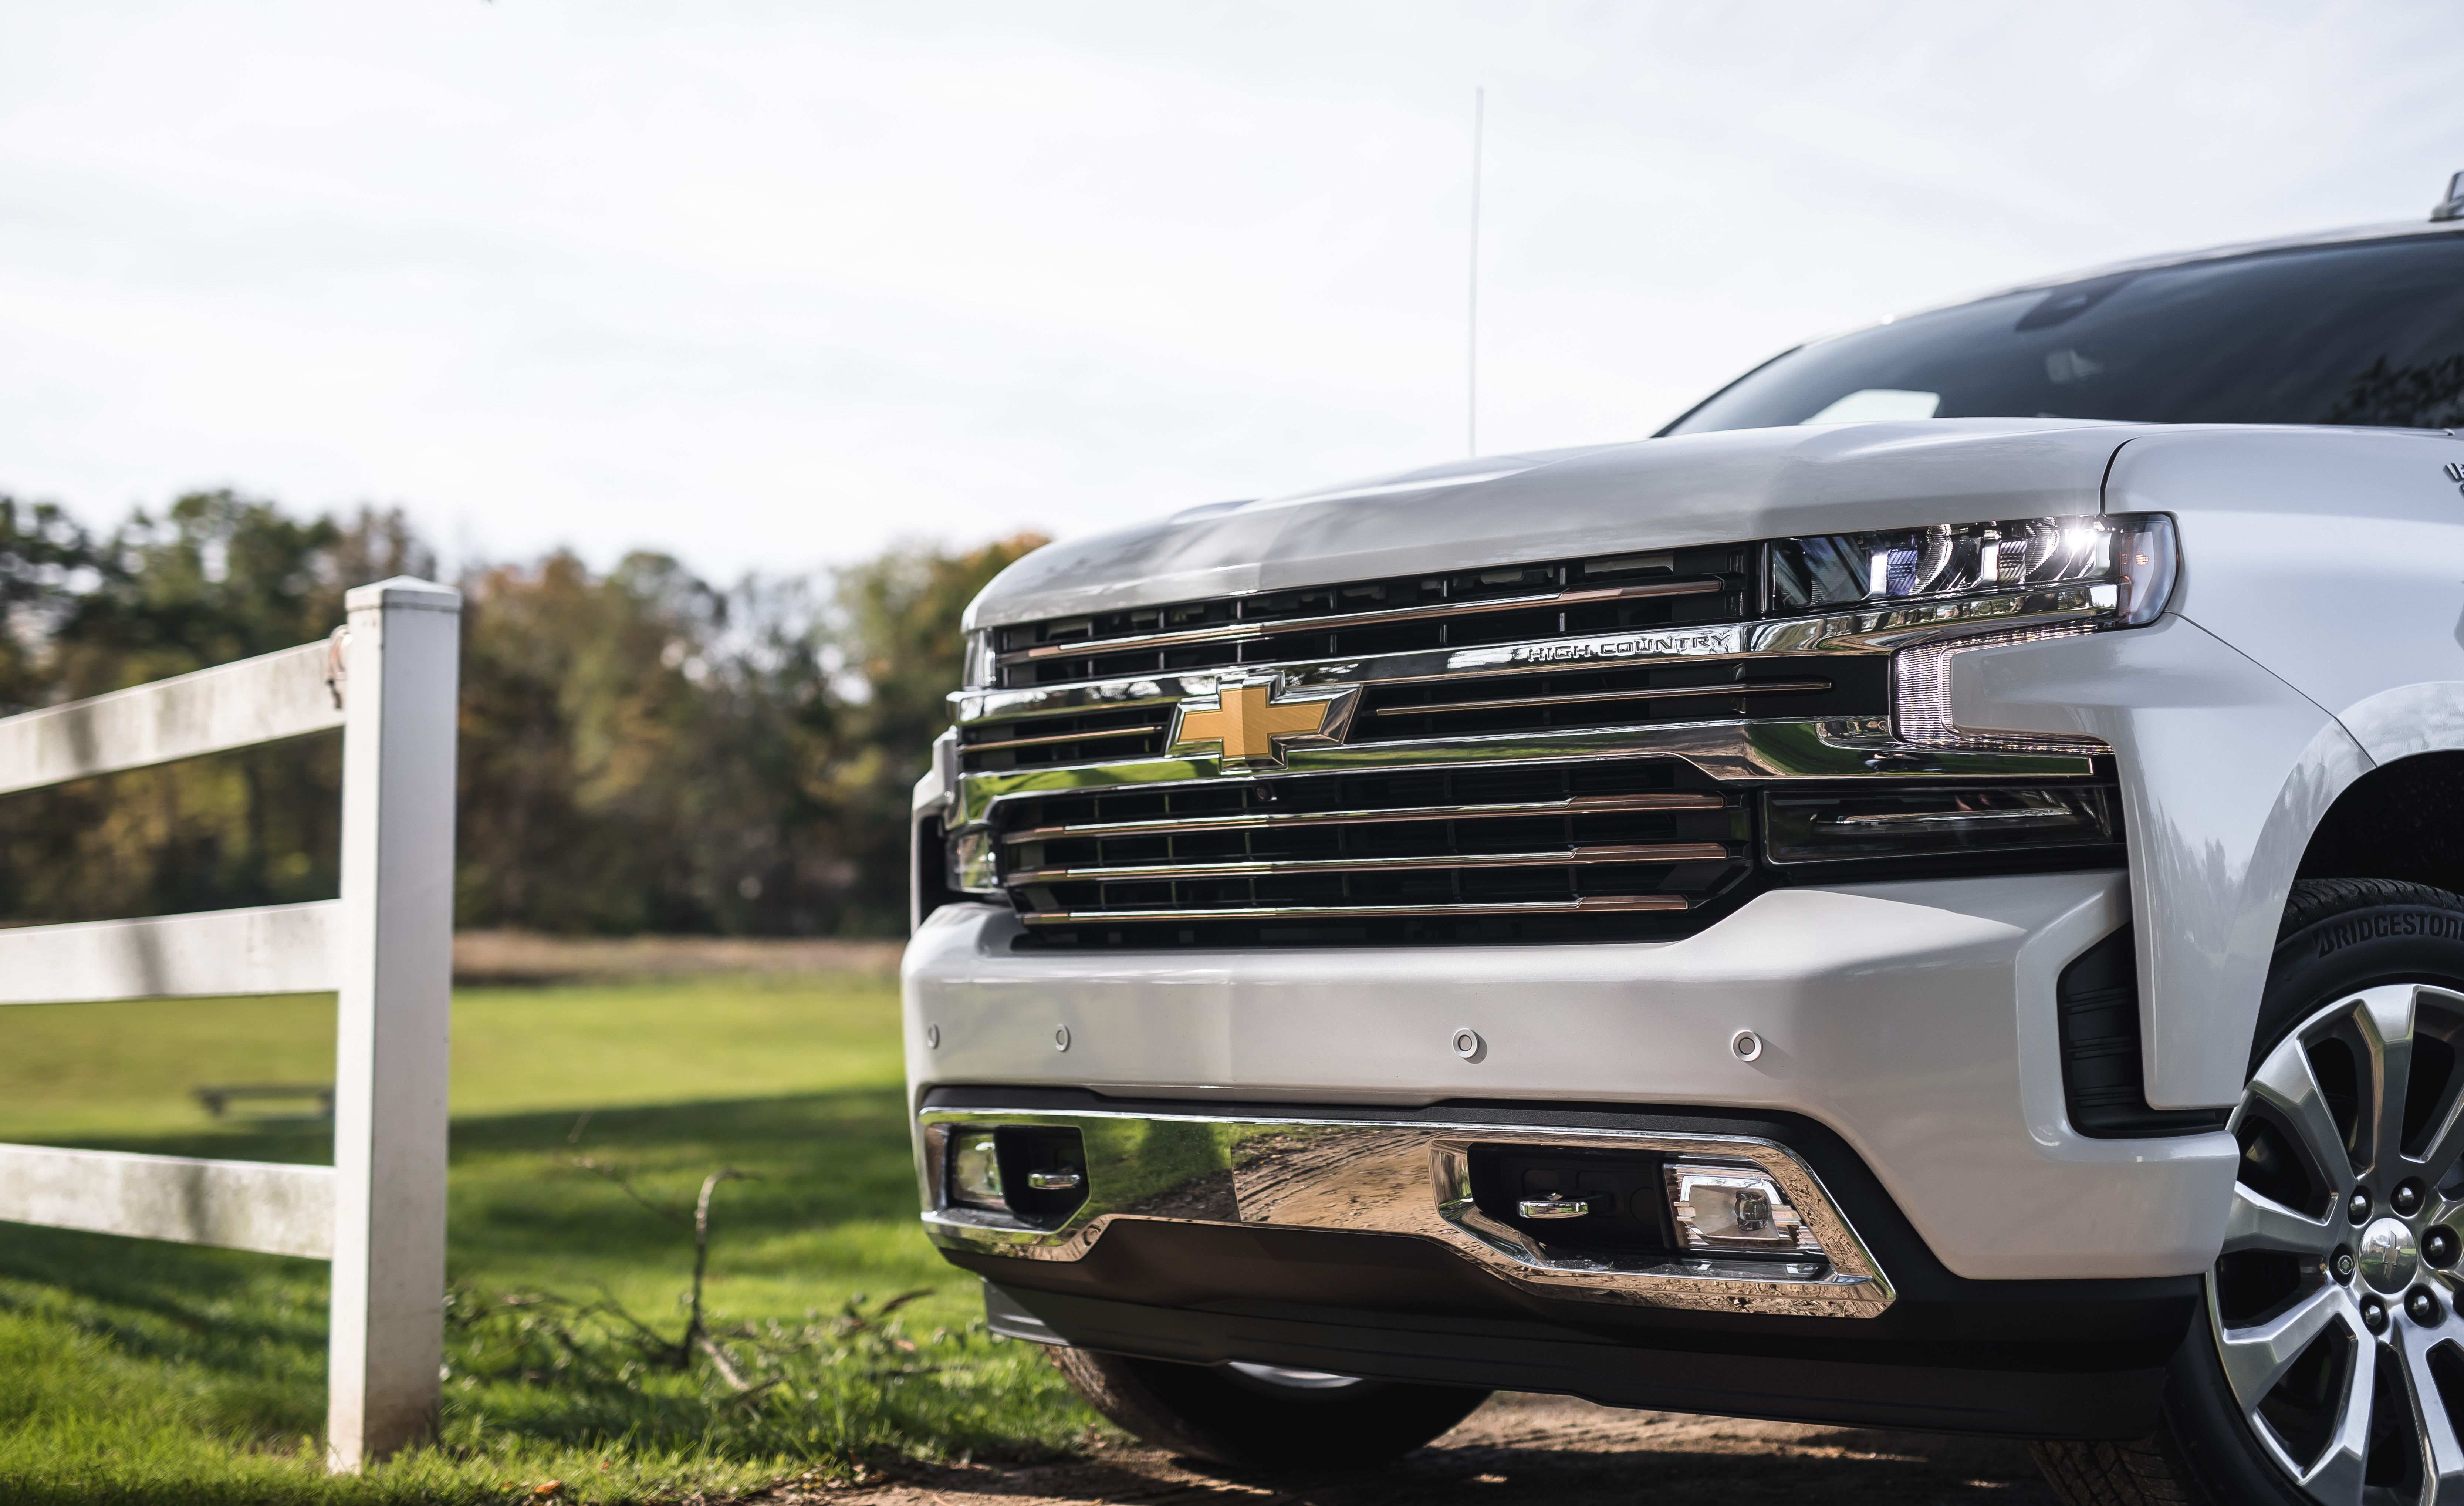 50 Concept of Best High Country Chevrolet 2019 Price And Review Concept with Best High Country Chevrolet 2019 Price And Review